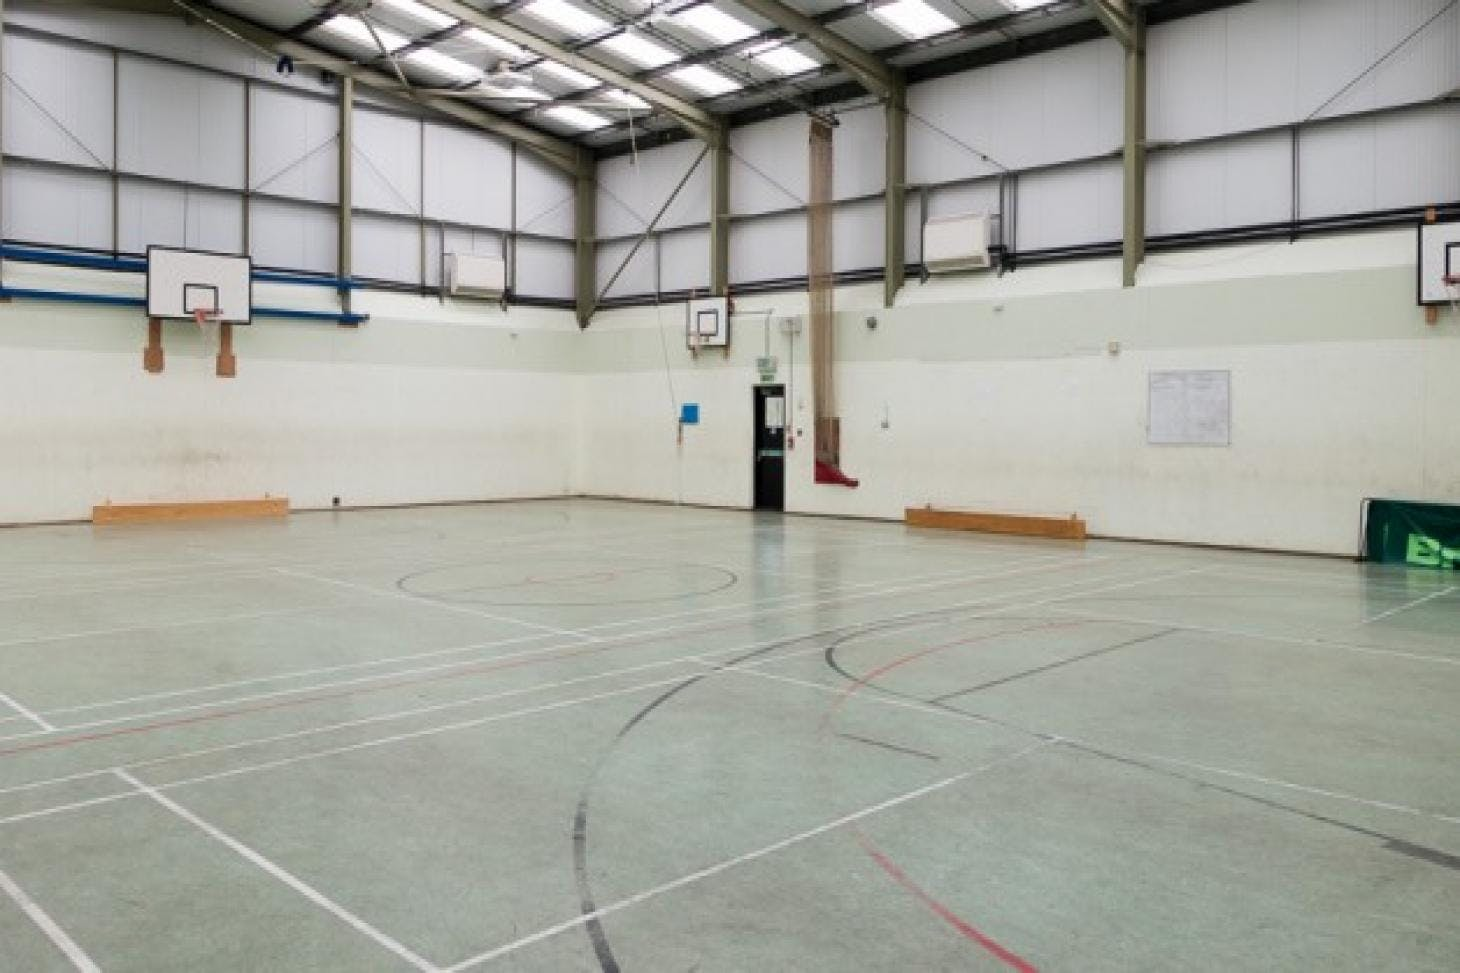 Hendon School Indoor basketball court